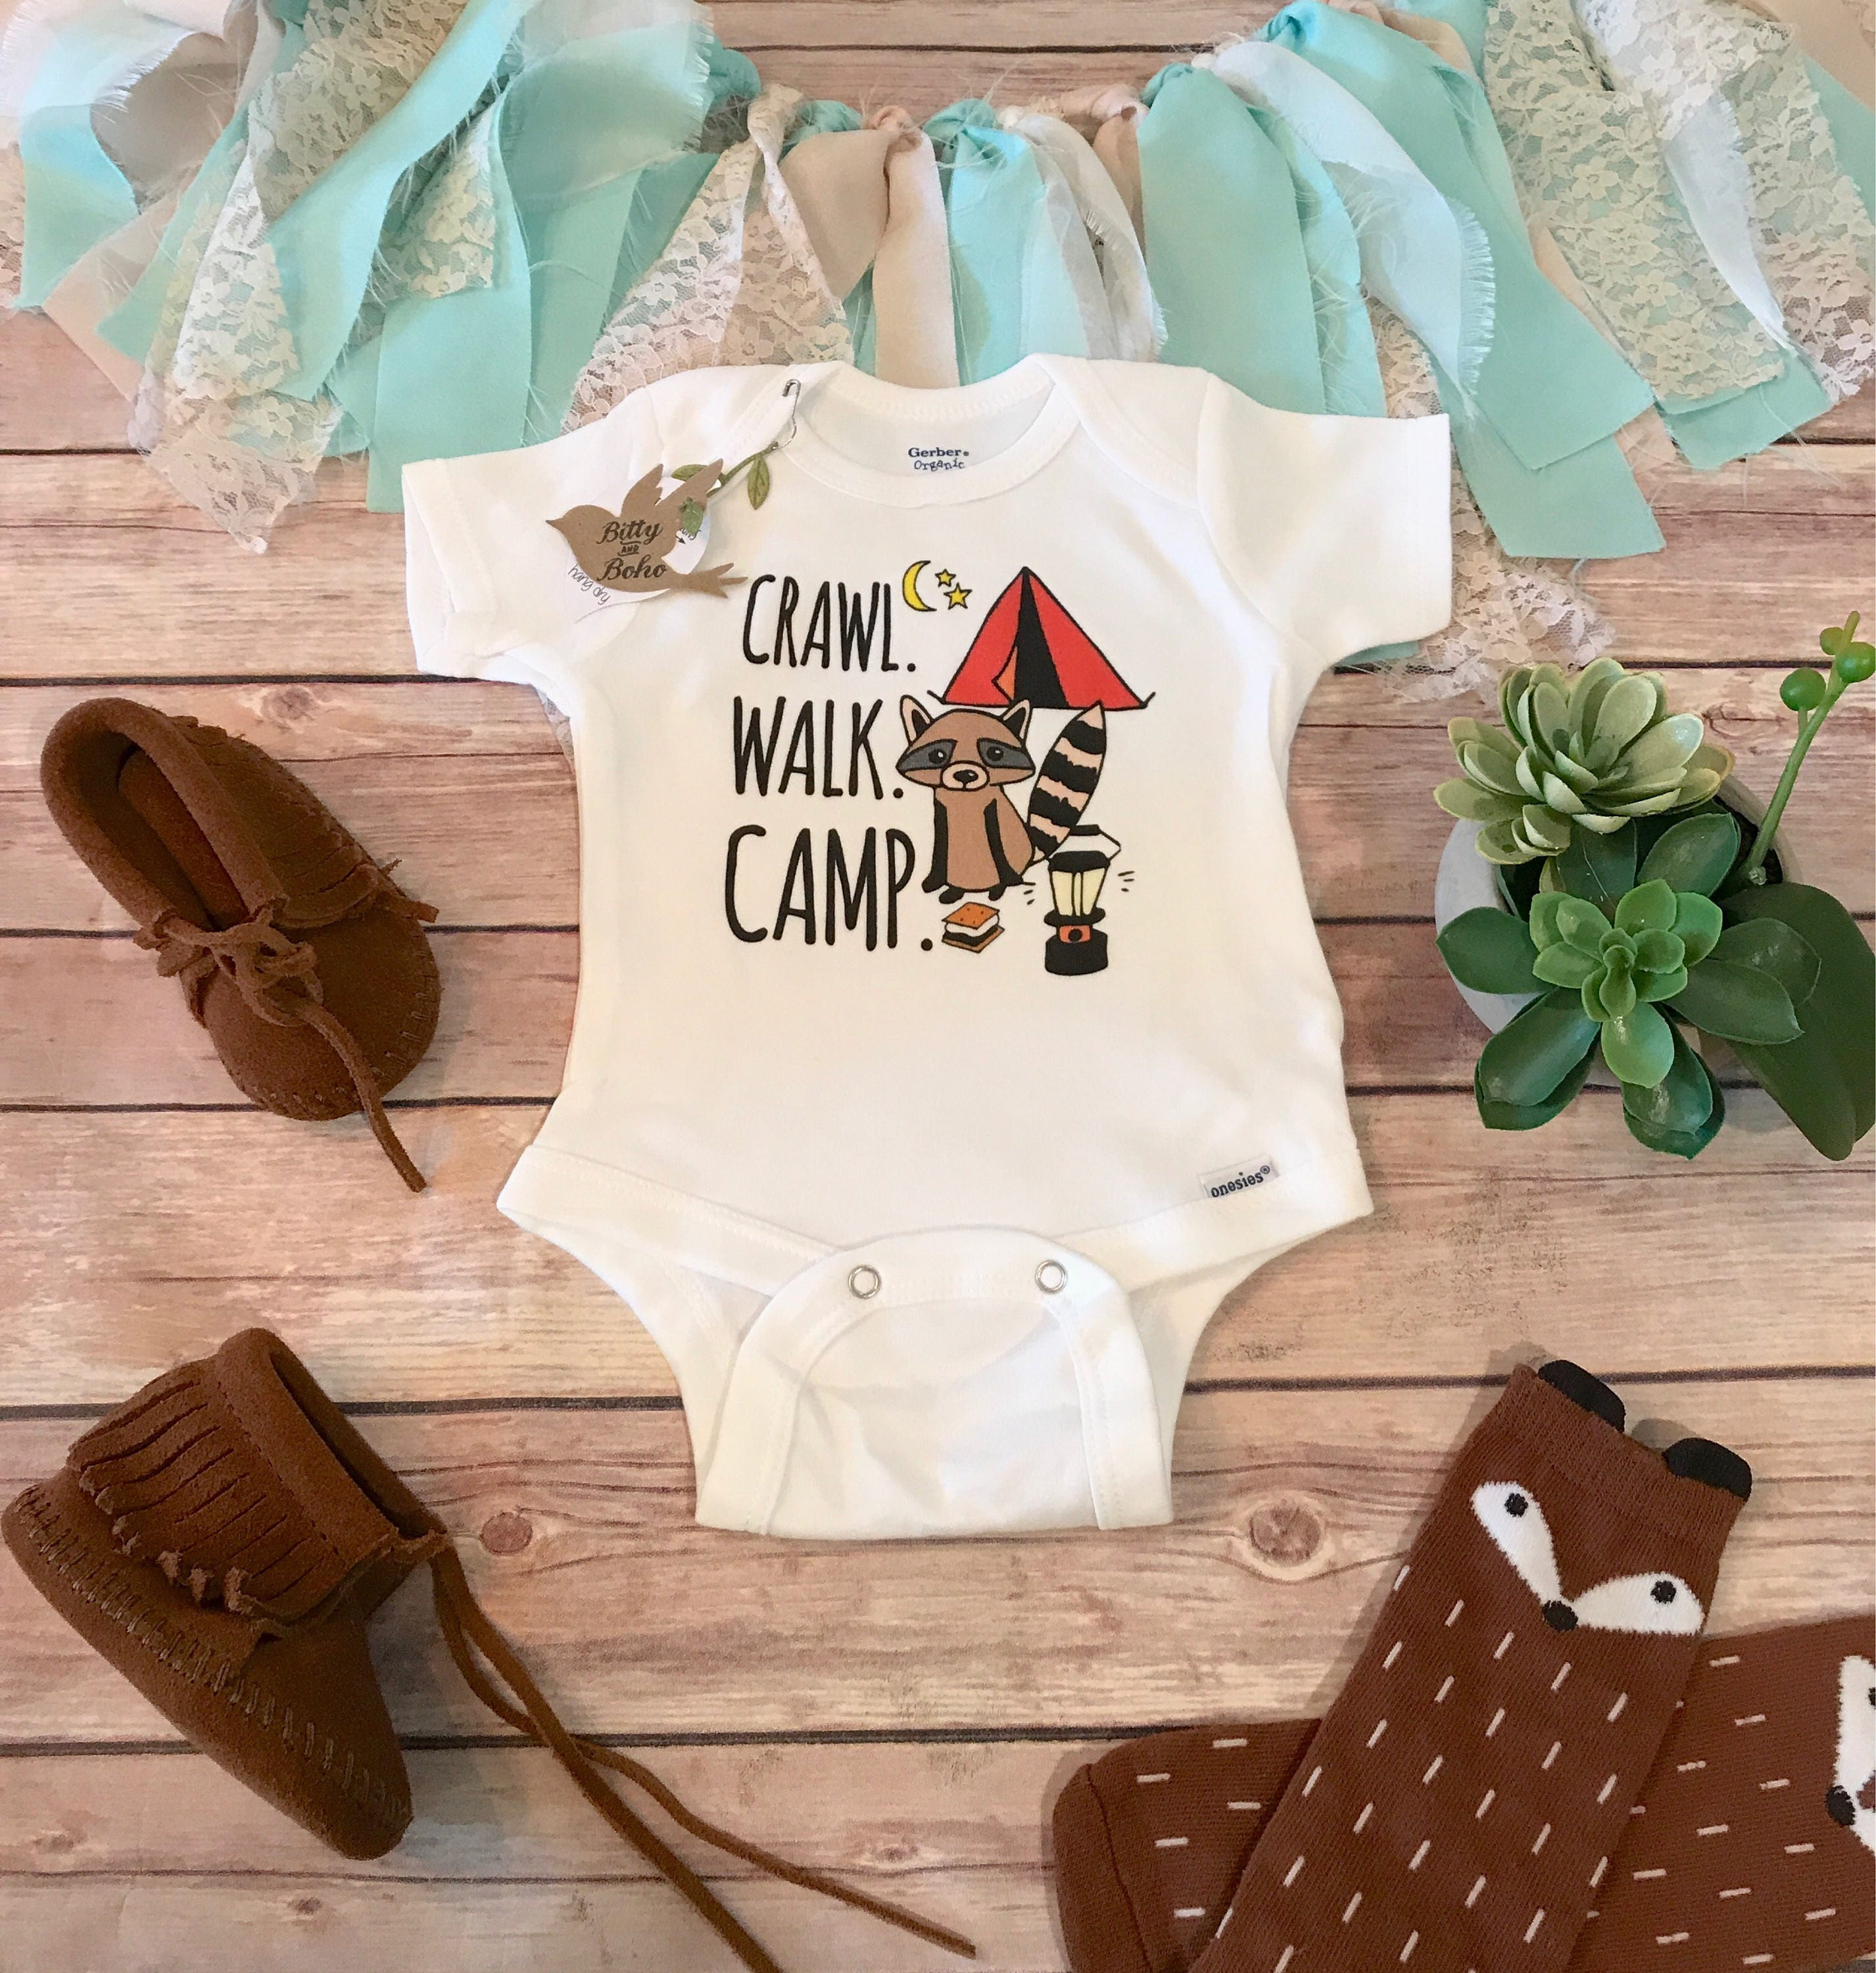 Camping esie Baby Boy Clothes Baby Shower Gift Cute